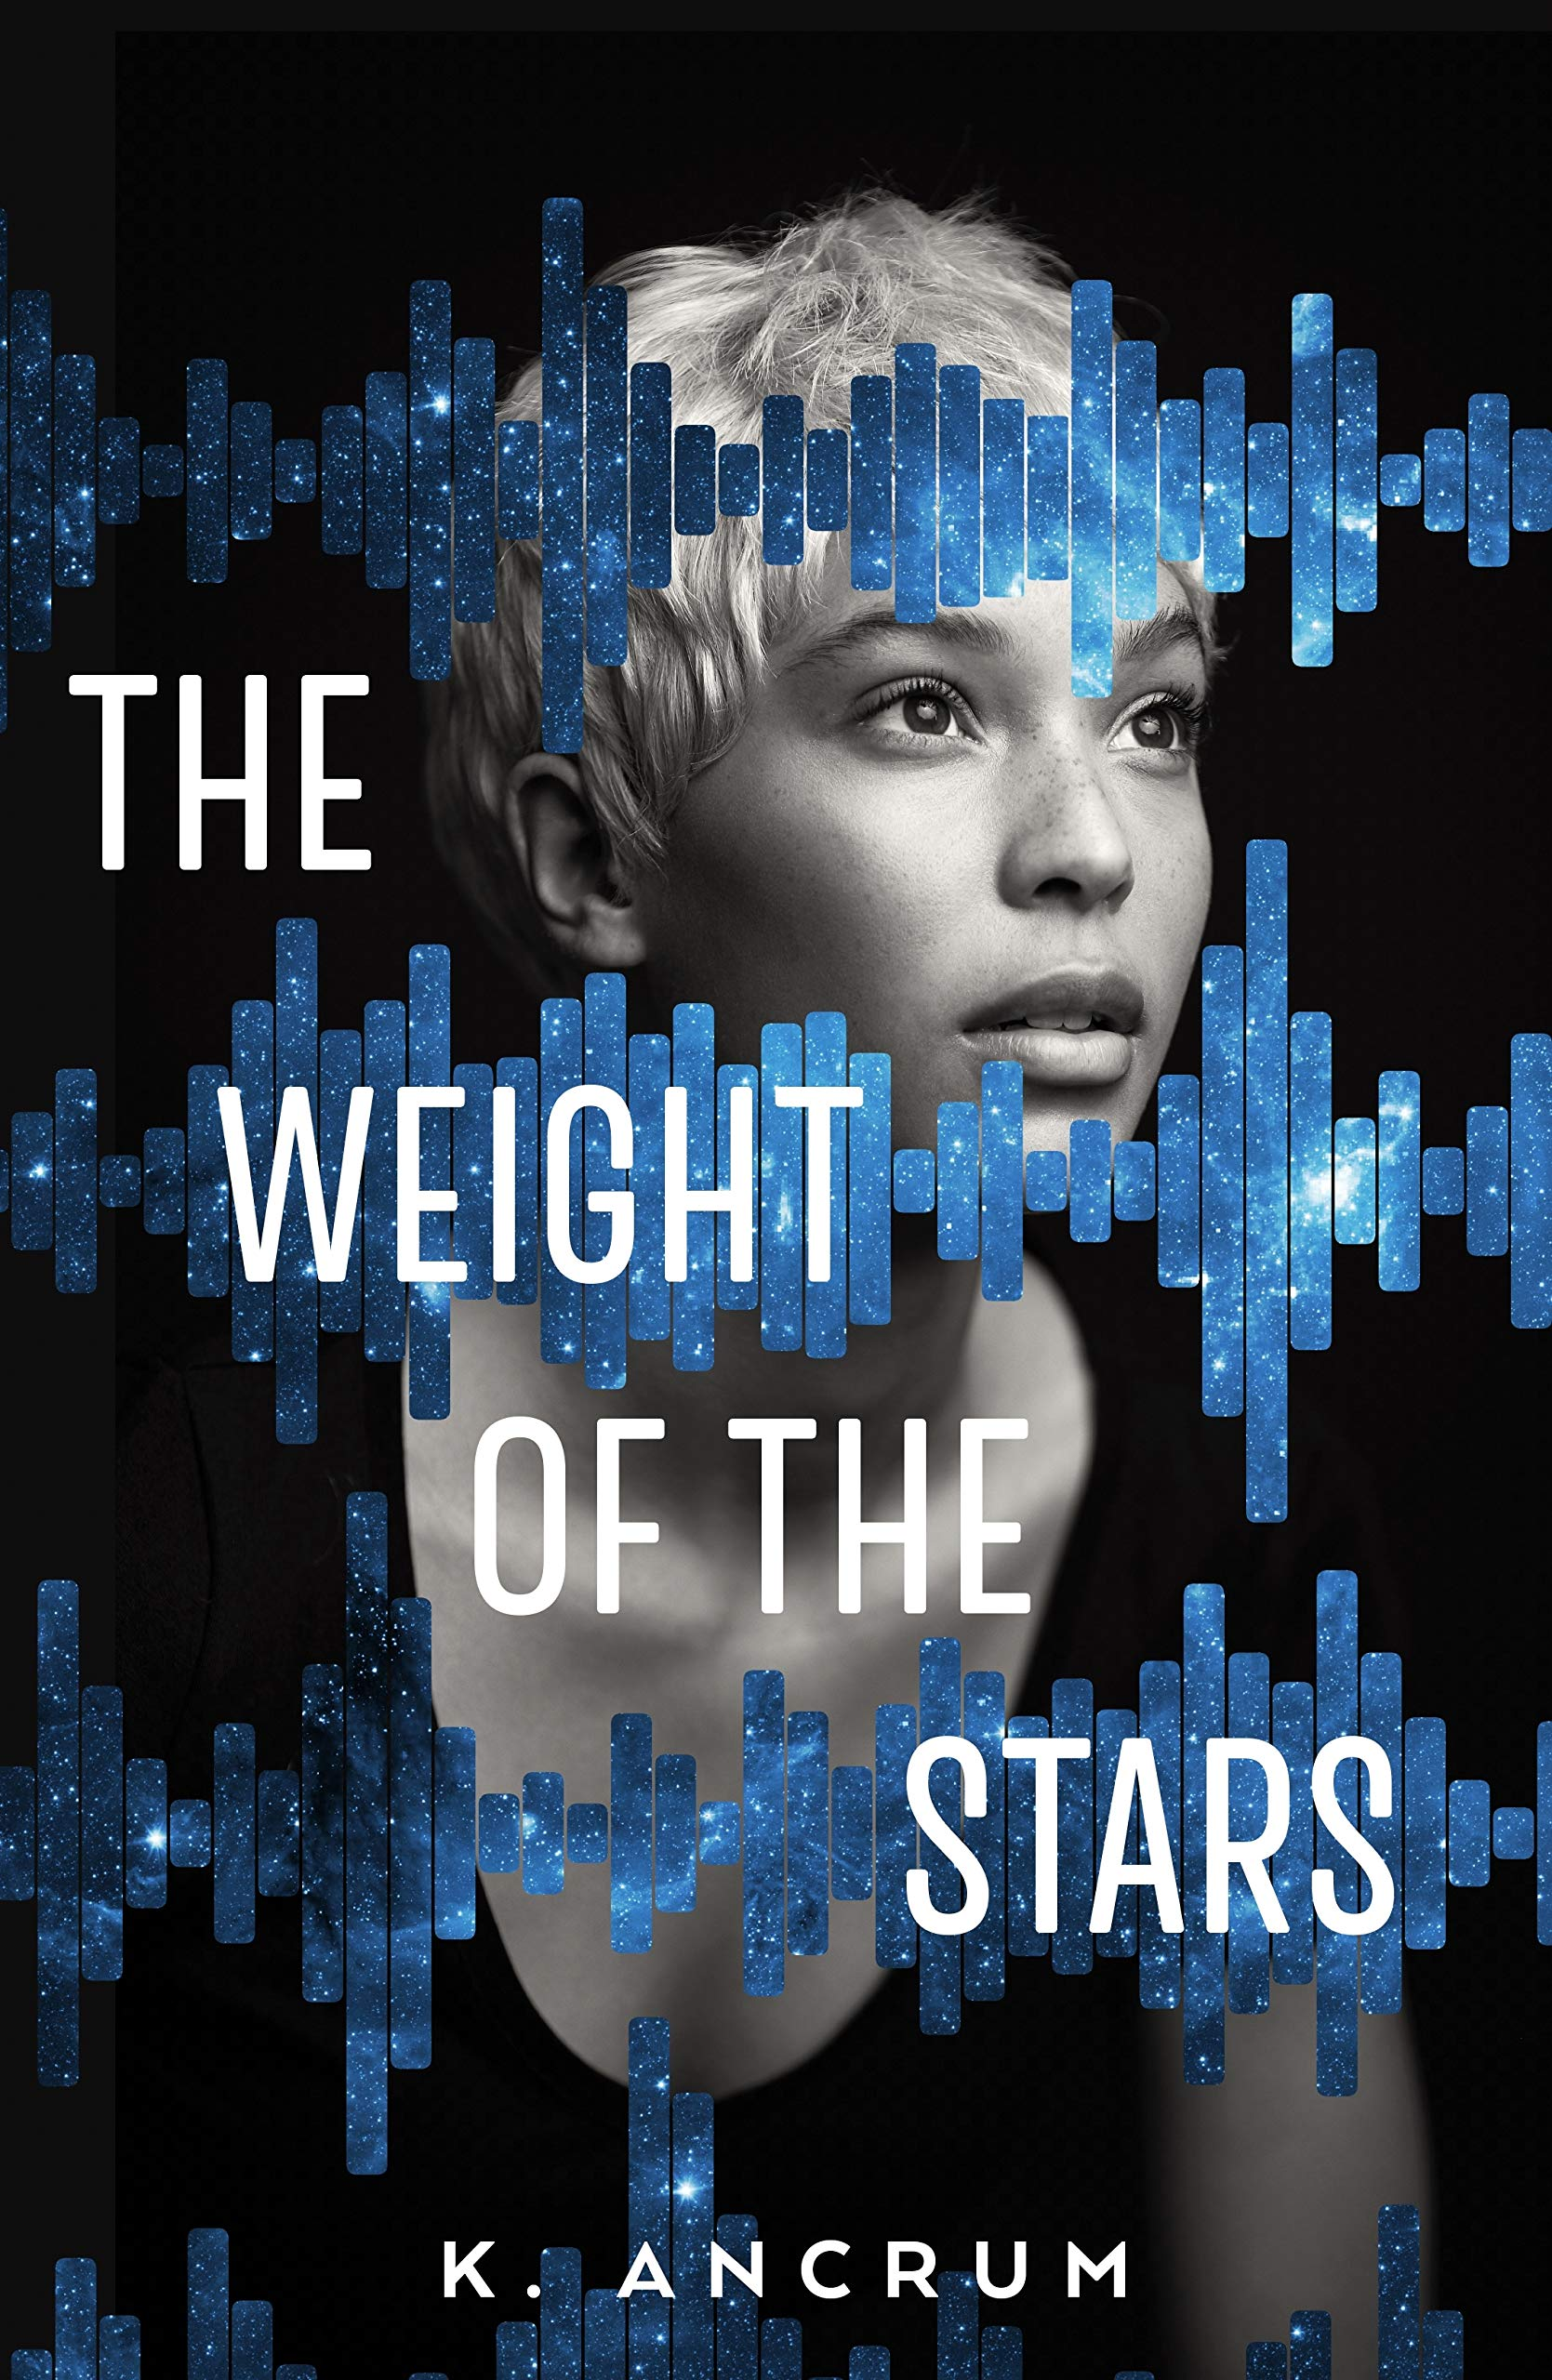 Amazon.com: The Weight of the Stars (9781250101631): Ancrum, K.: Books